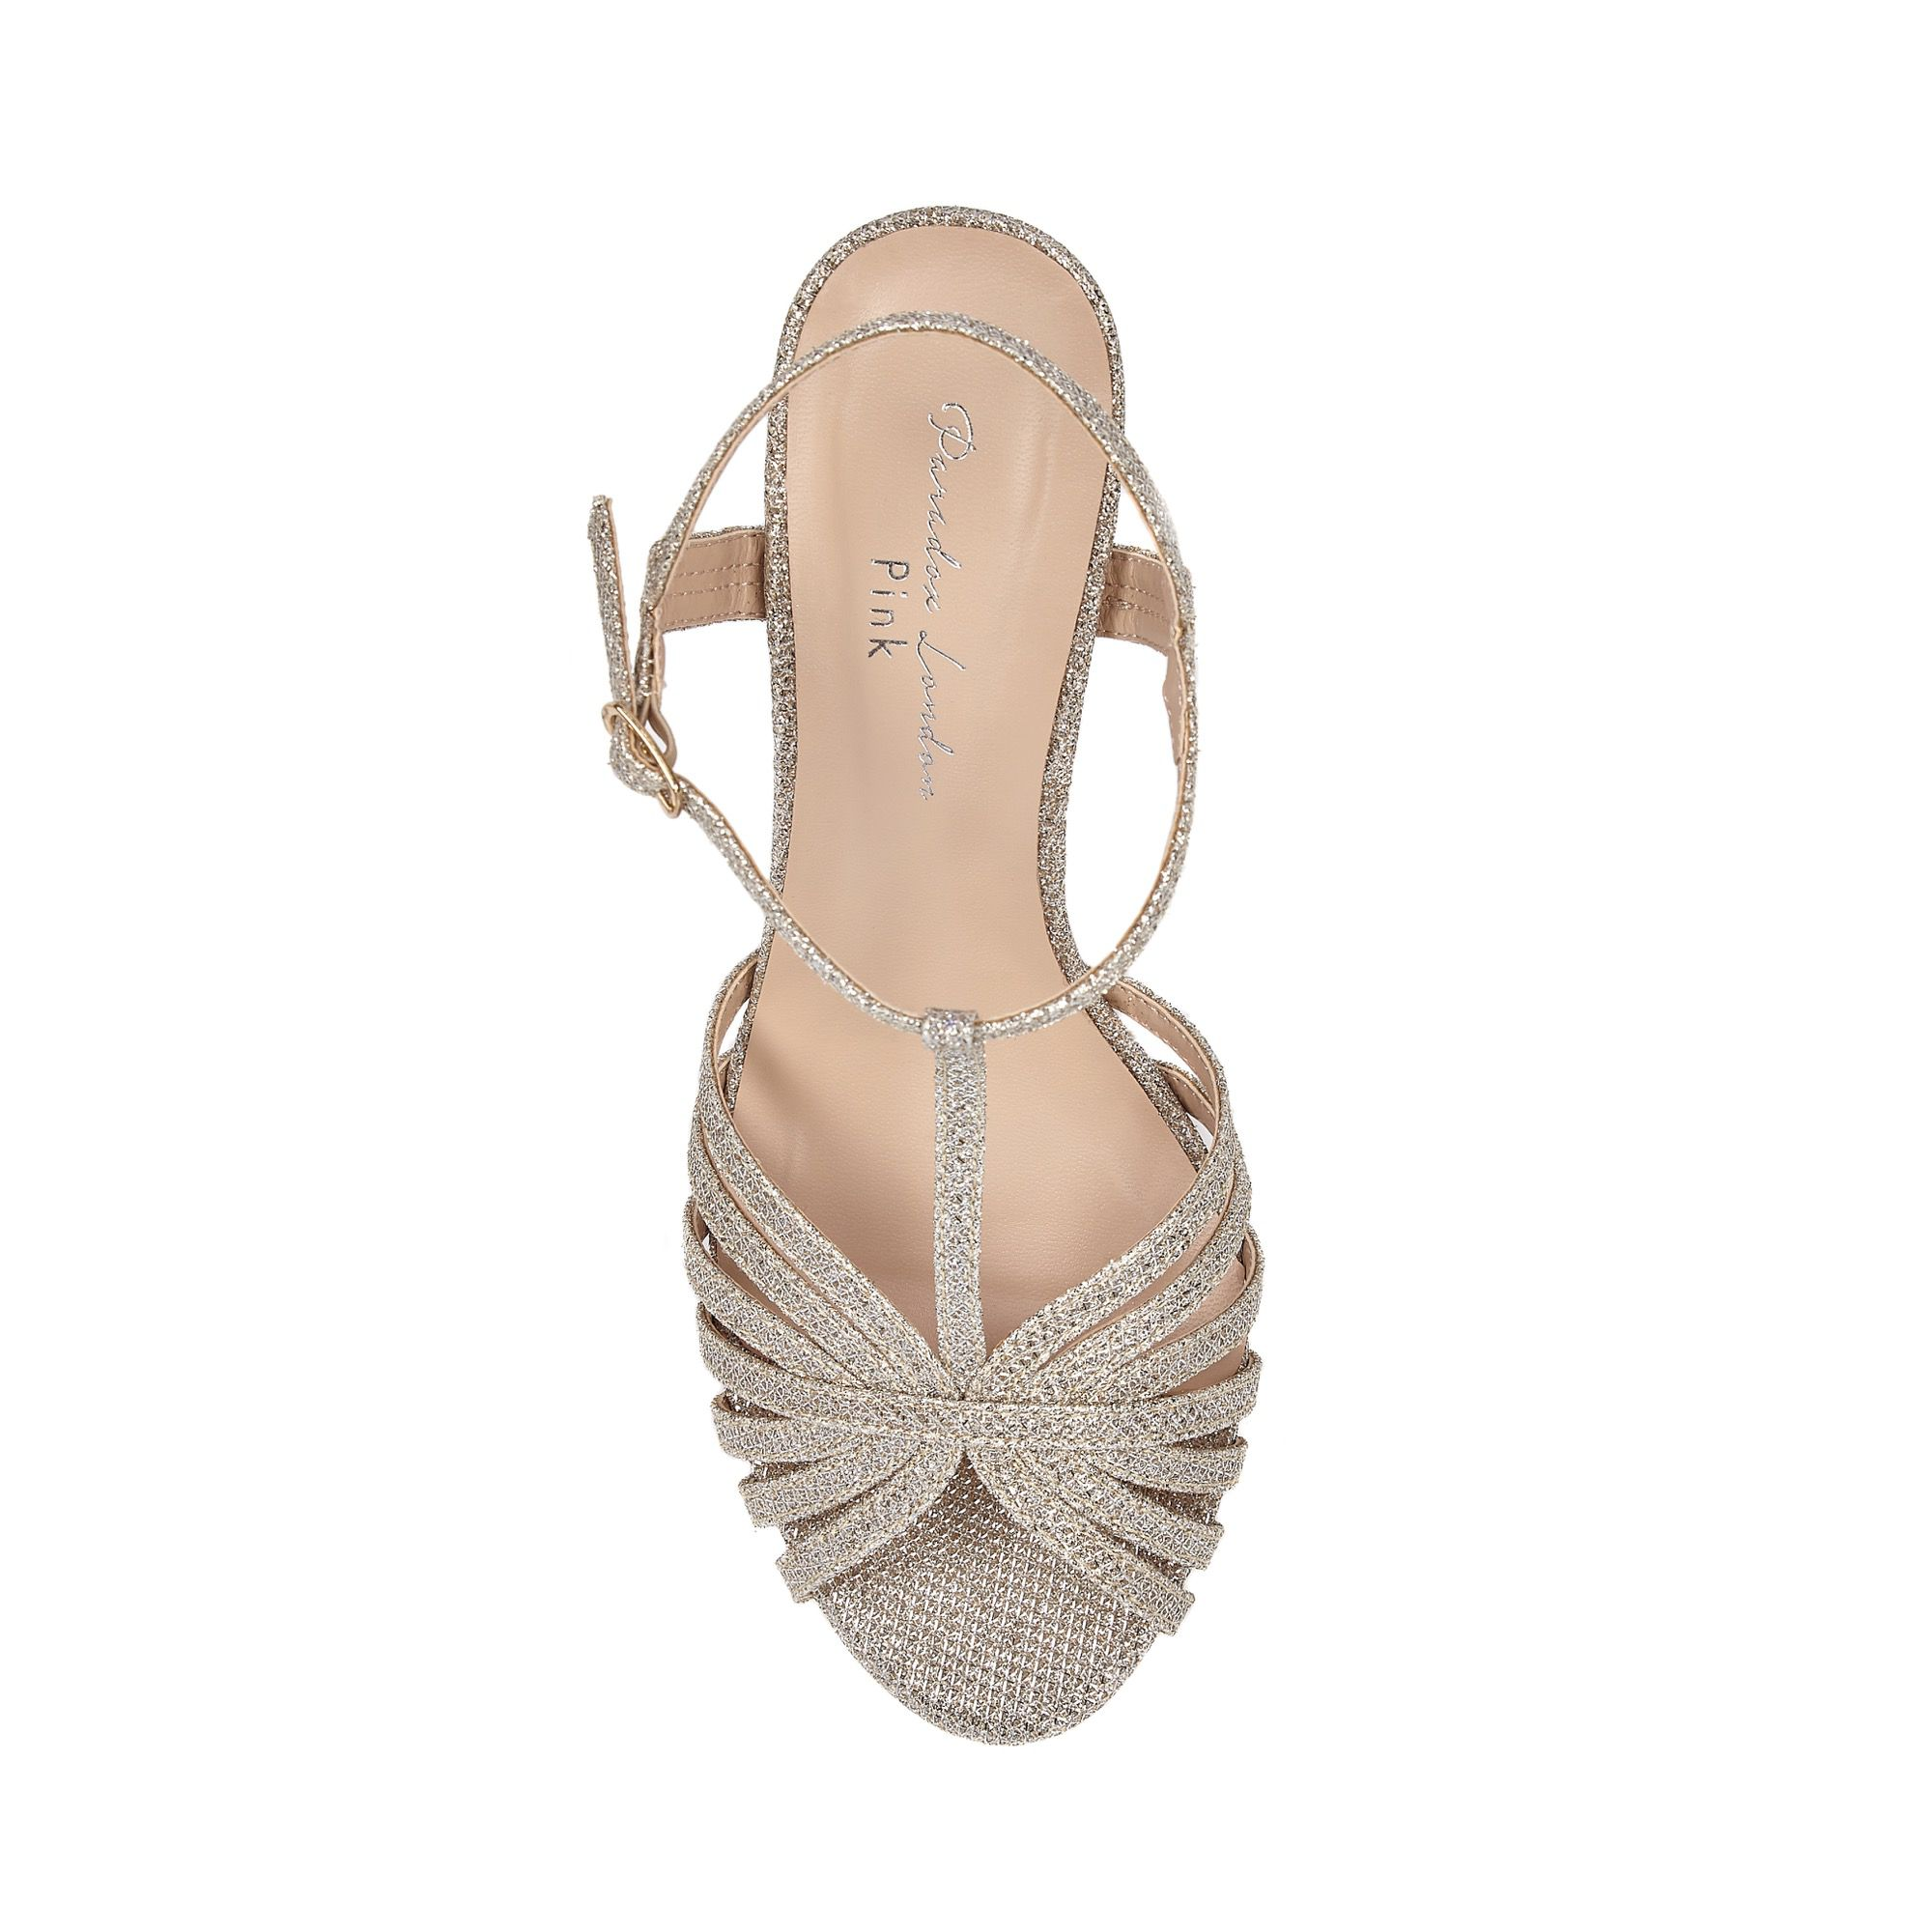 3cb844c6e59 paradox london pink maggie mid heel sandals - house of fraser